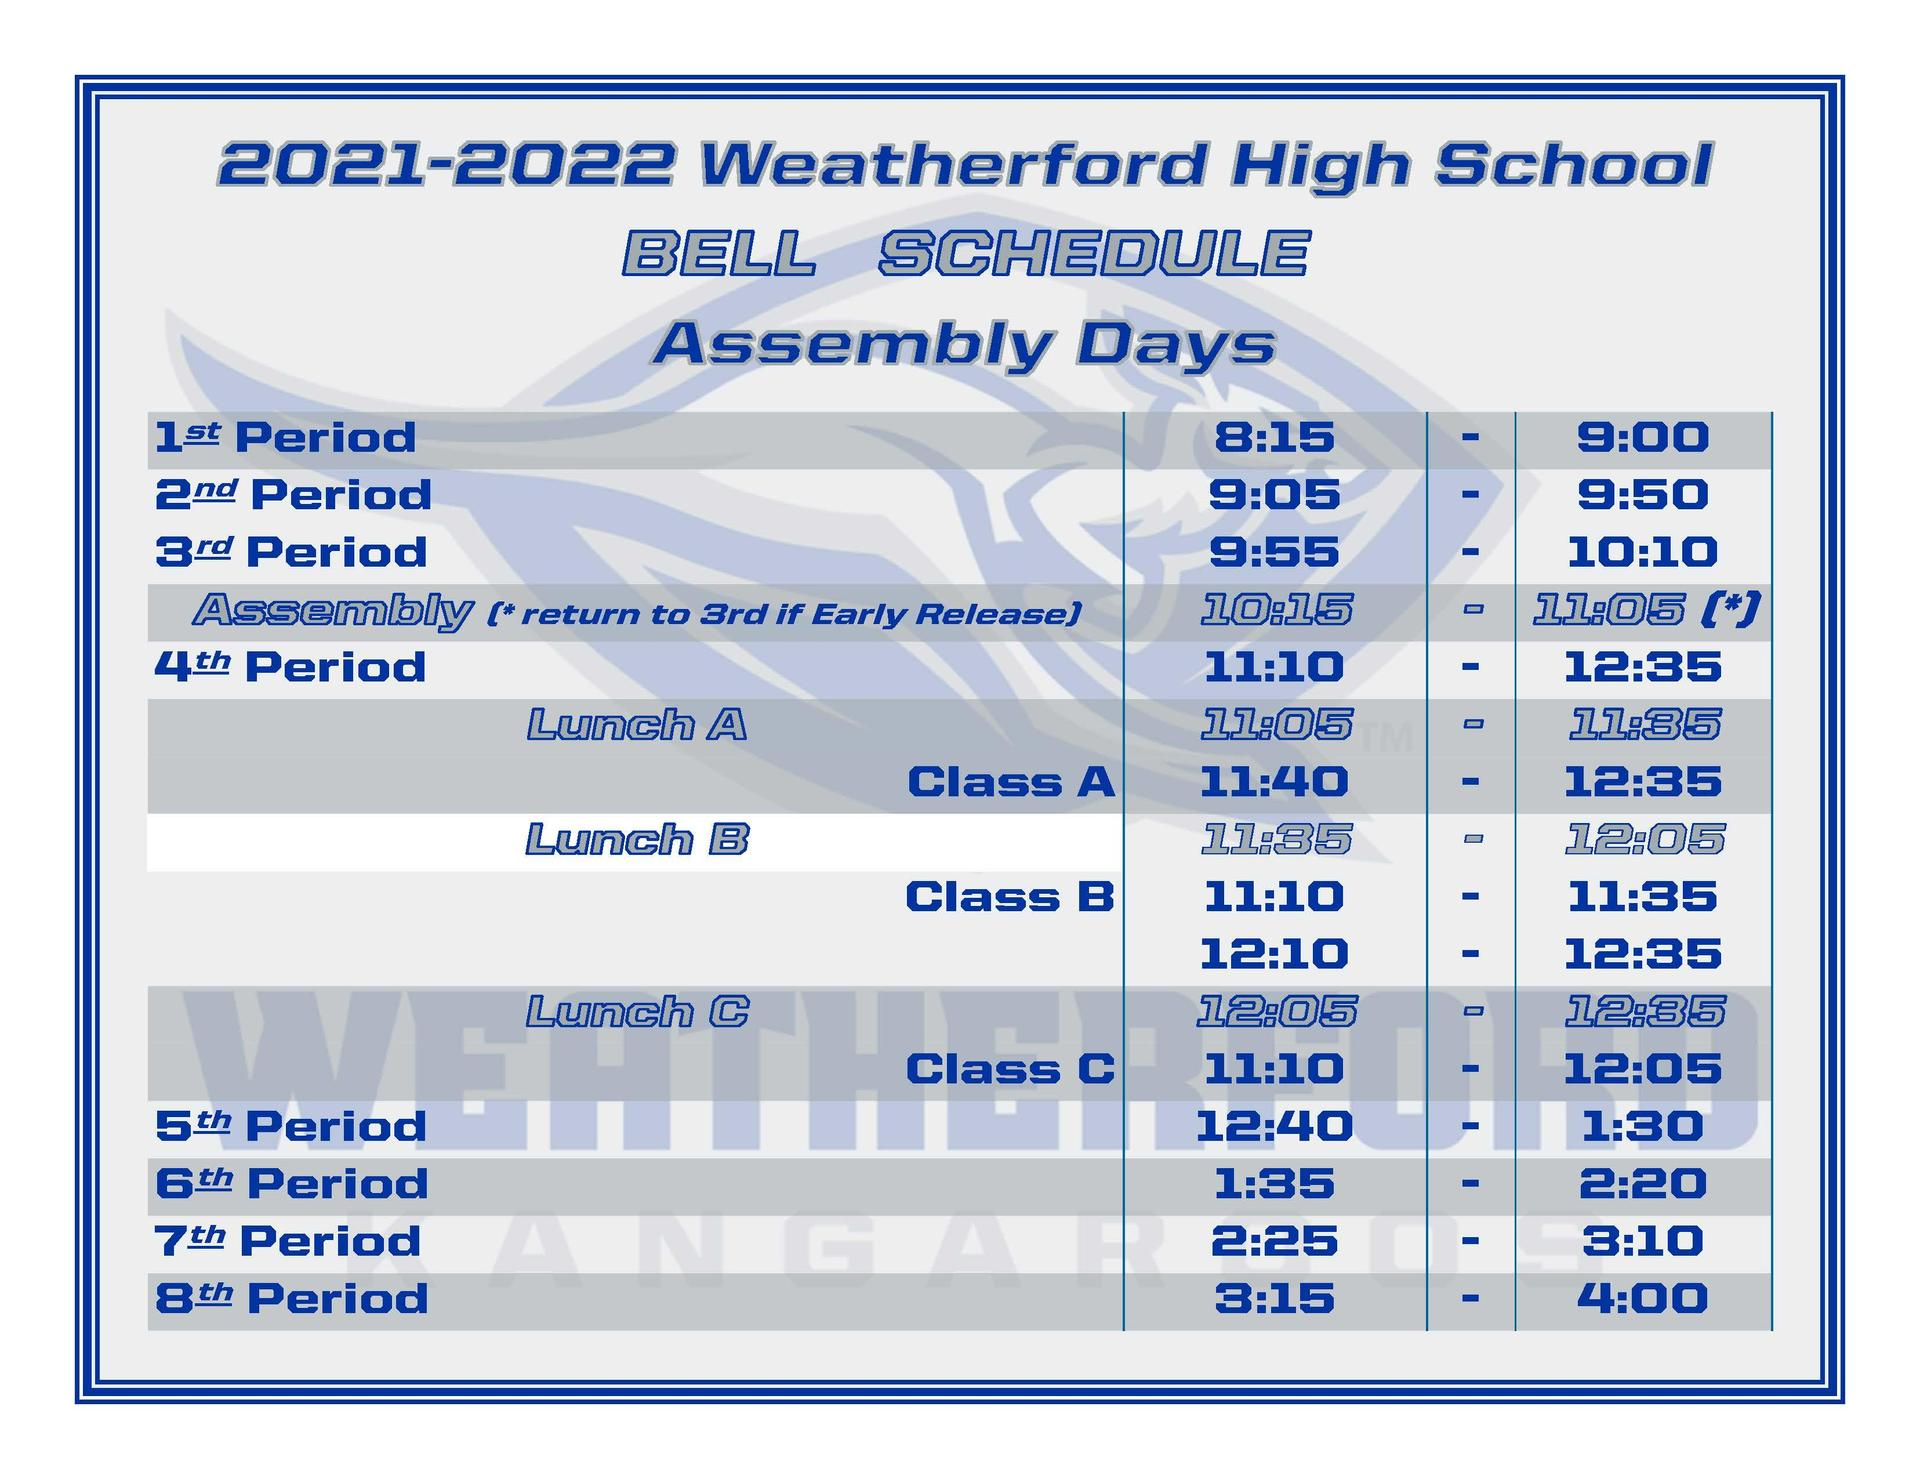 Assembly Day Bell Schedule